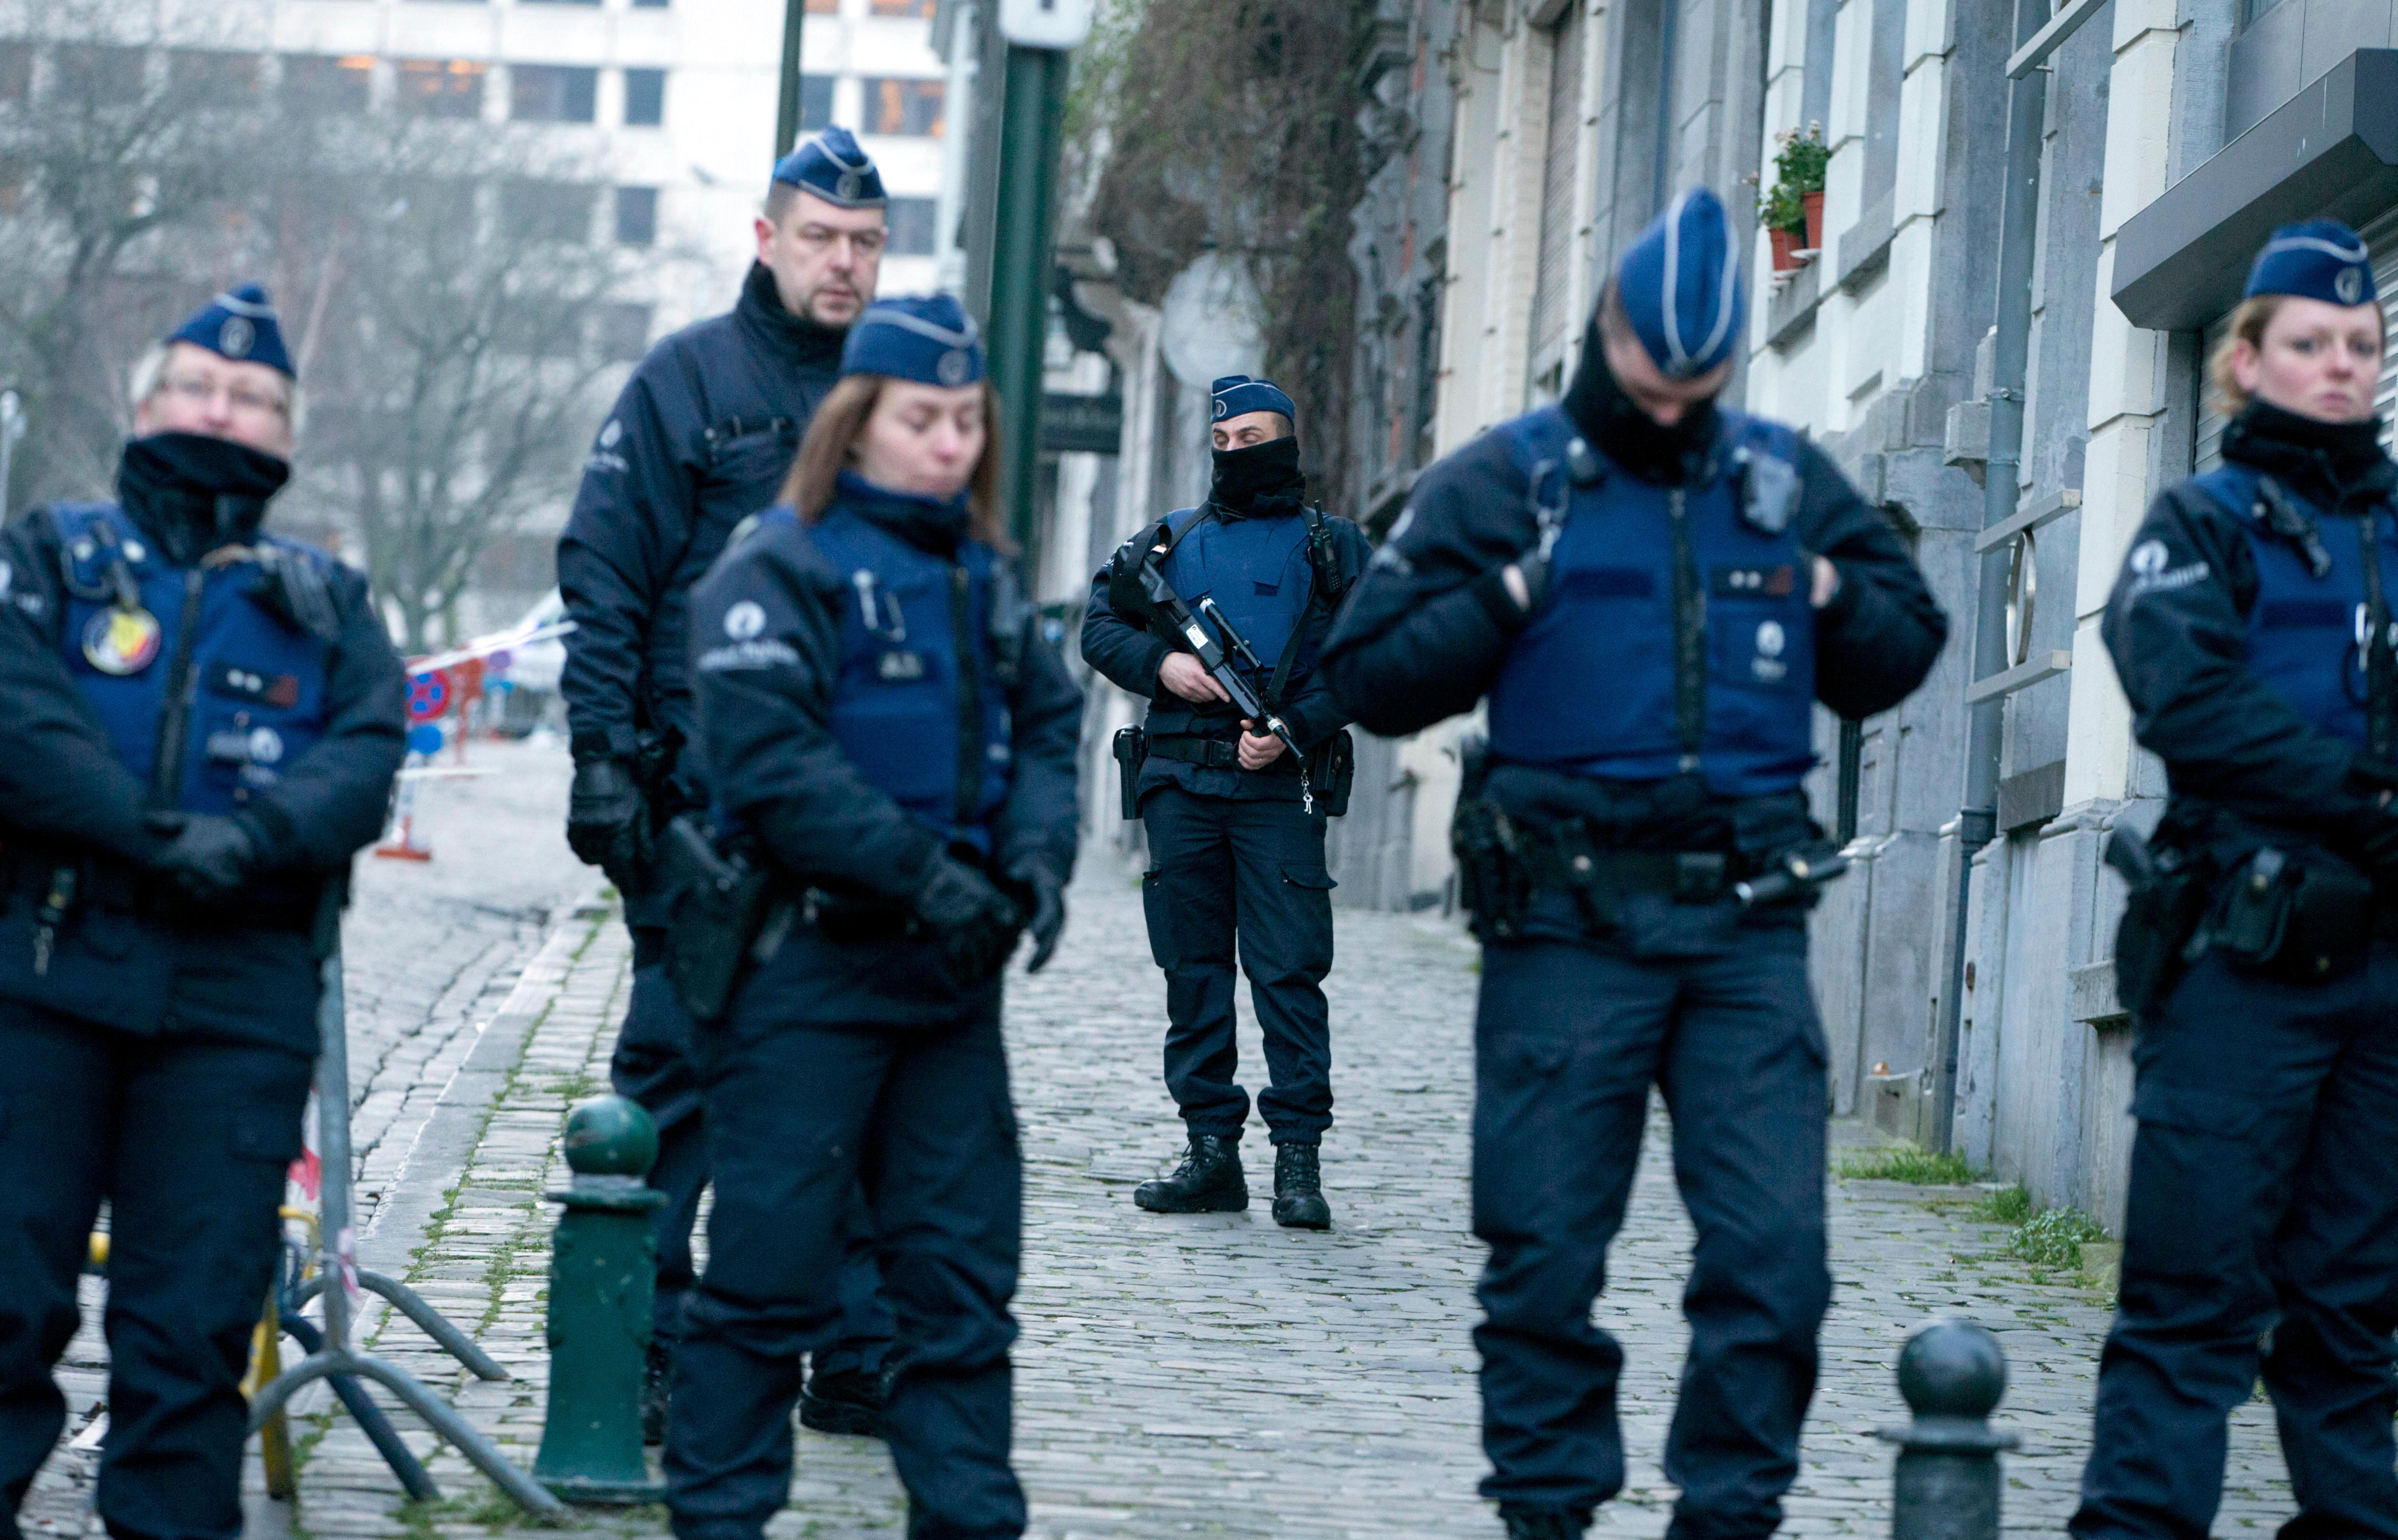 Police guard as they await a convoy carrying Salah Abdeslam and other members of the trial arrives under police guard at the Brussels Justice Palace in Brussels on Monday, Feb. 5, 2018. Salah Abdeslam and Soufiane Ayari face trial for taking part in a shooting incident in Vorst, Belgium on March 15, 2016. The incident took place when six members of a Franco-Belgian research team investigating the attacks in Paris were conducting a search in an allegedly empty safe house of the terrorists and were attacked. (AP Photo/Virginia Mayo)